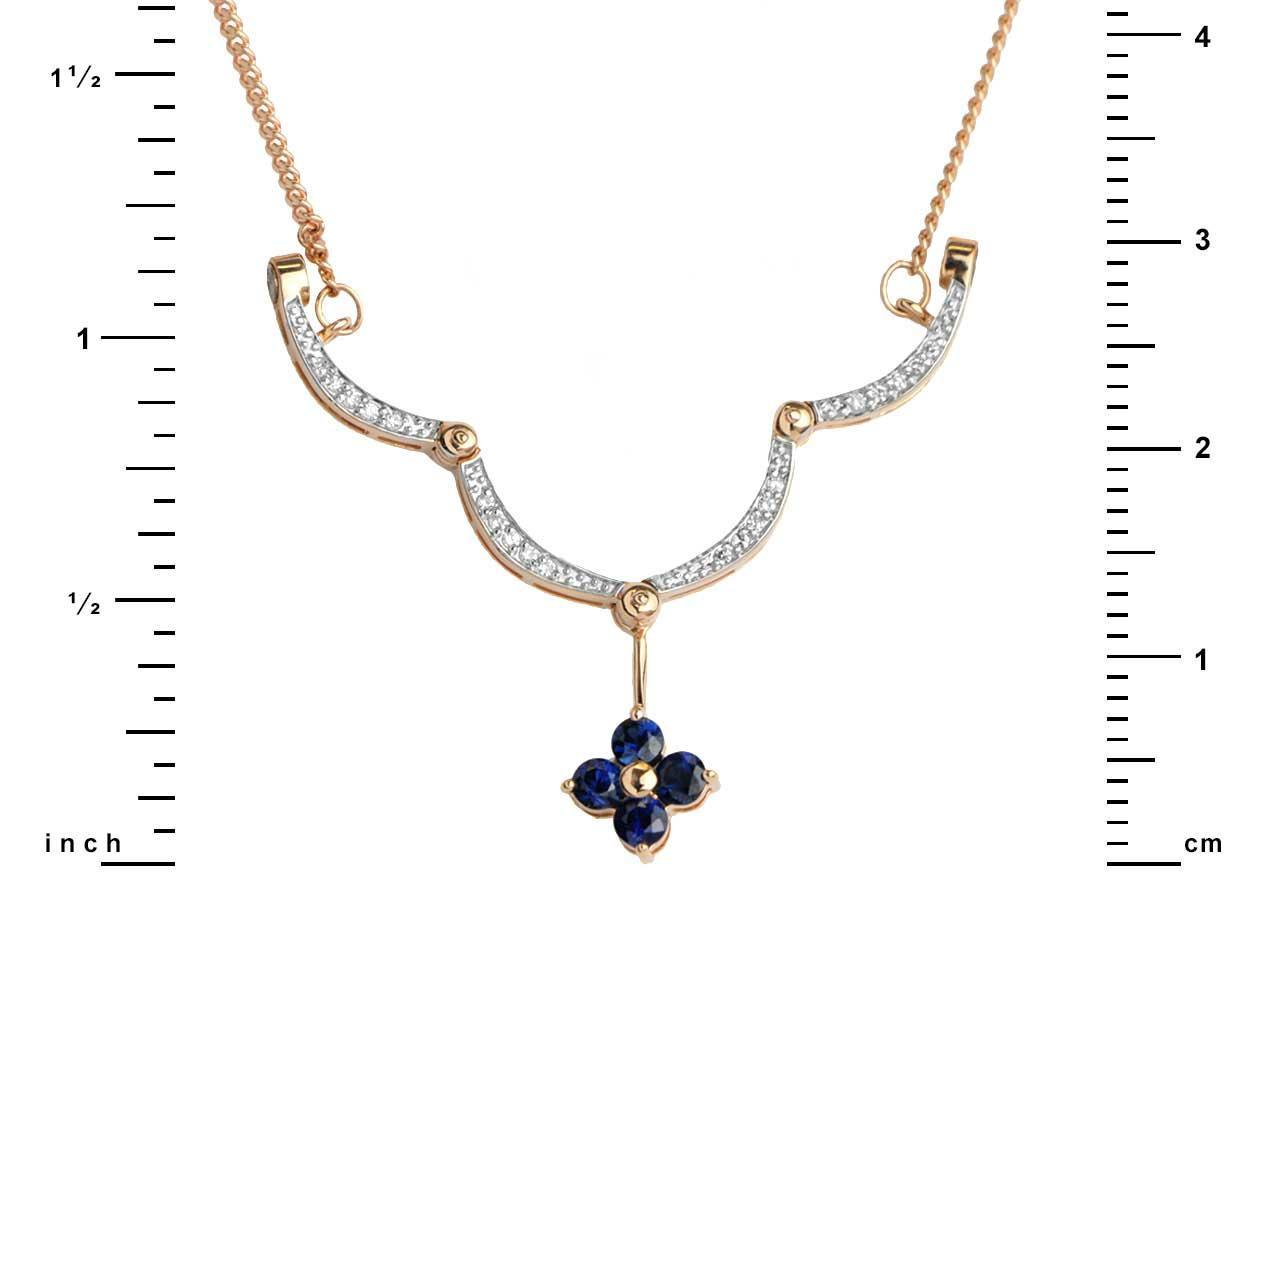 Sapphire convertible necklace 1